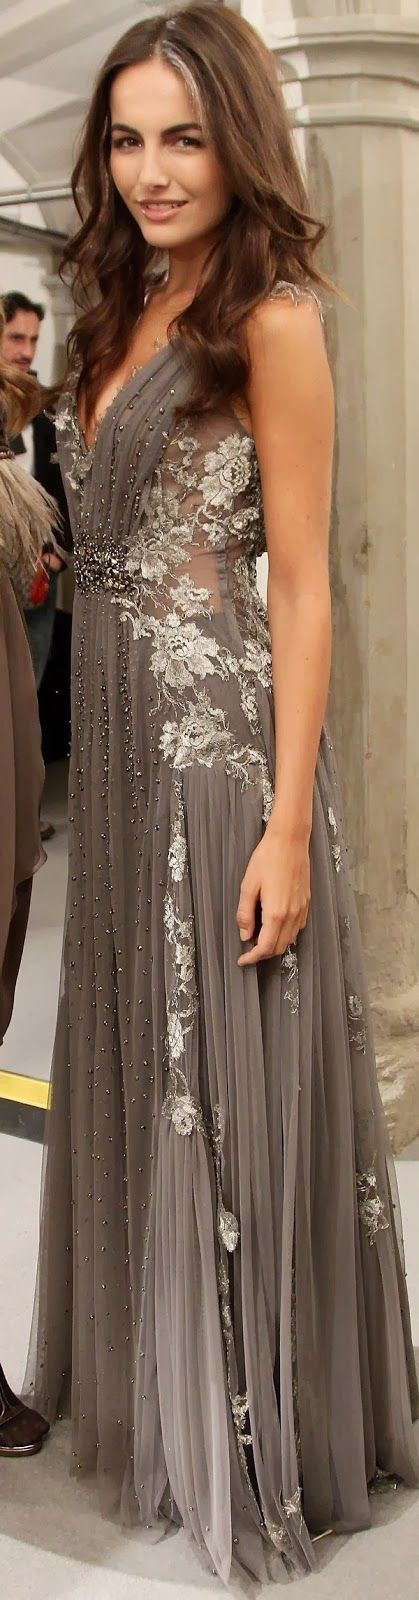 Stylish Ankle & Floor Length Maxis Collection 2015-2016 (14)